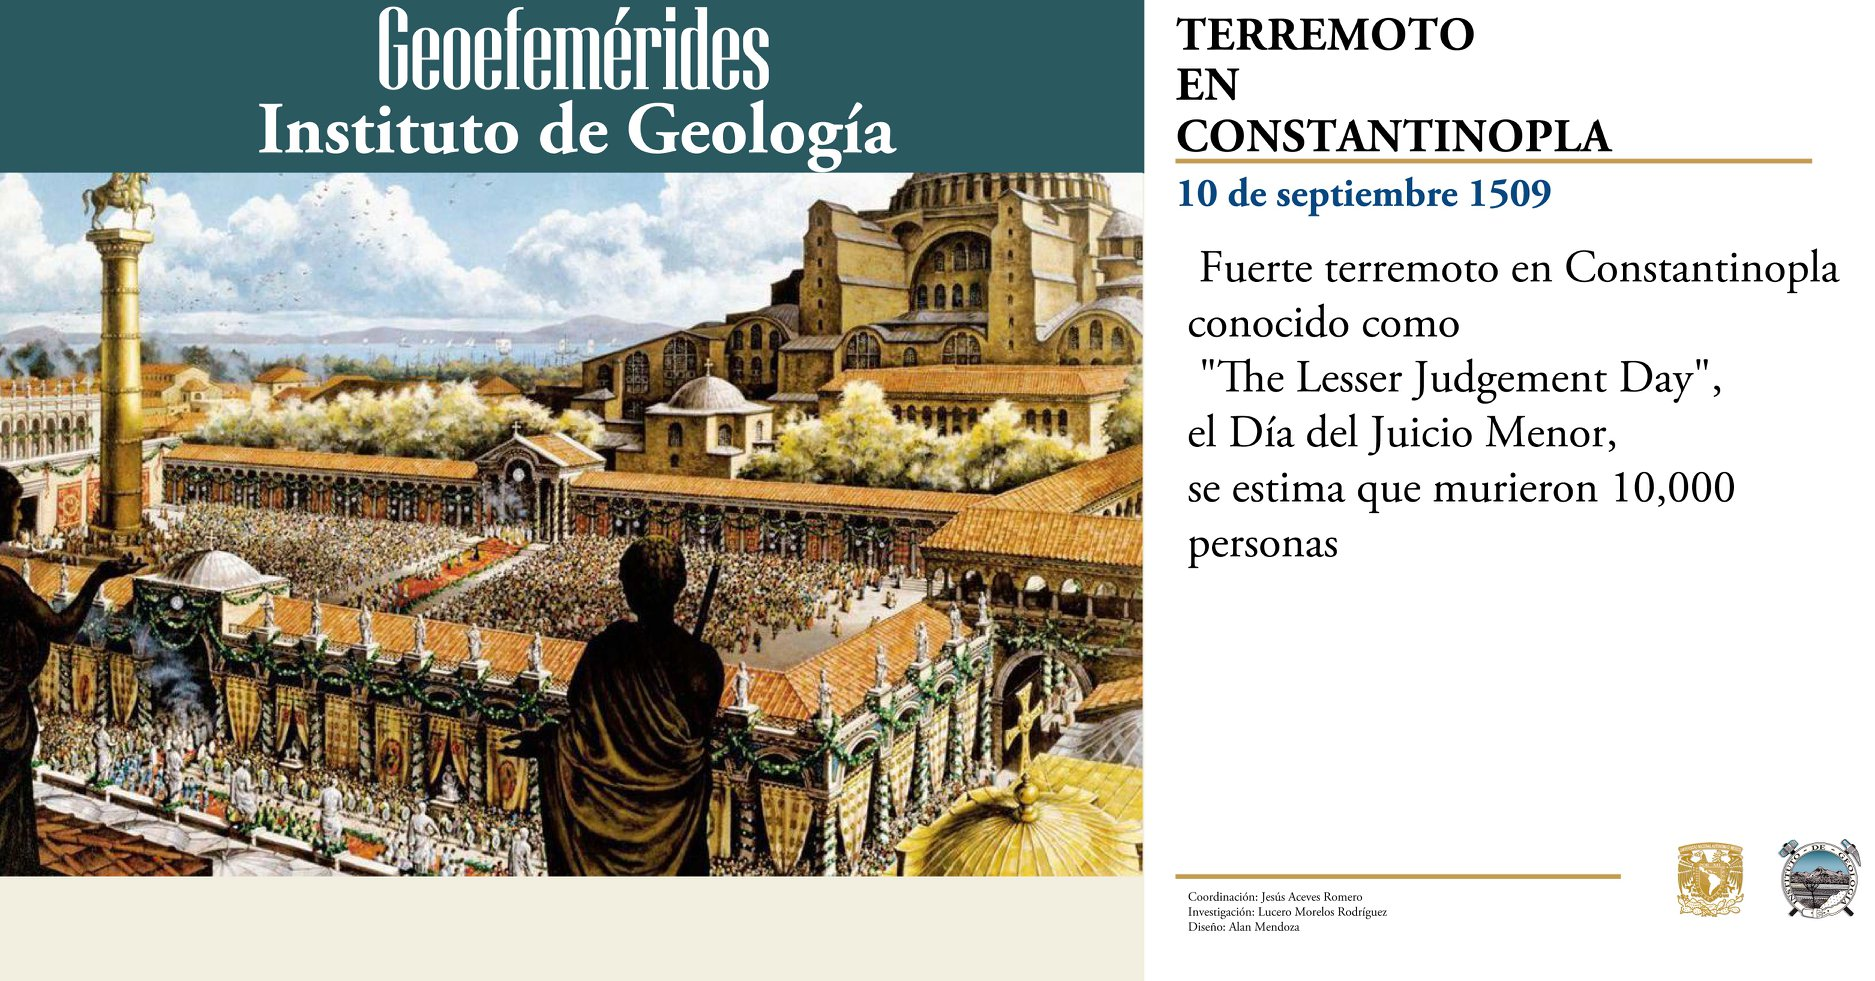 Geoefemerides 10 septiembre 2018 geologia